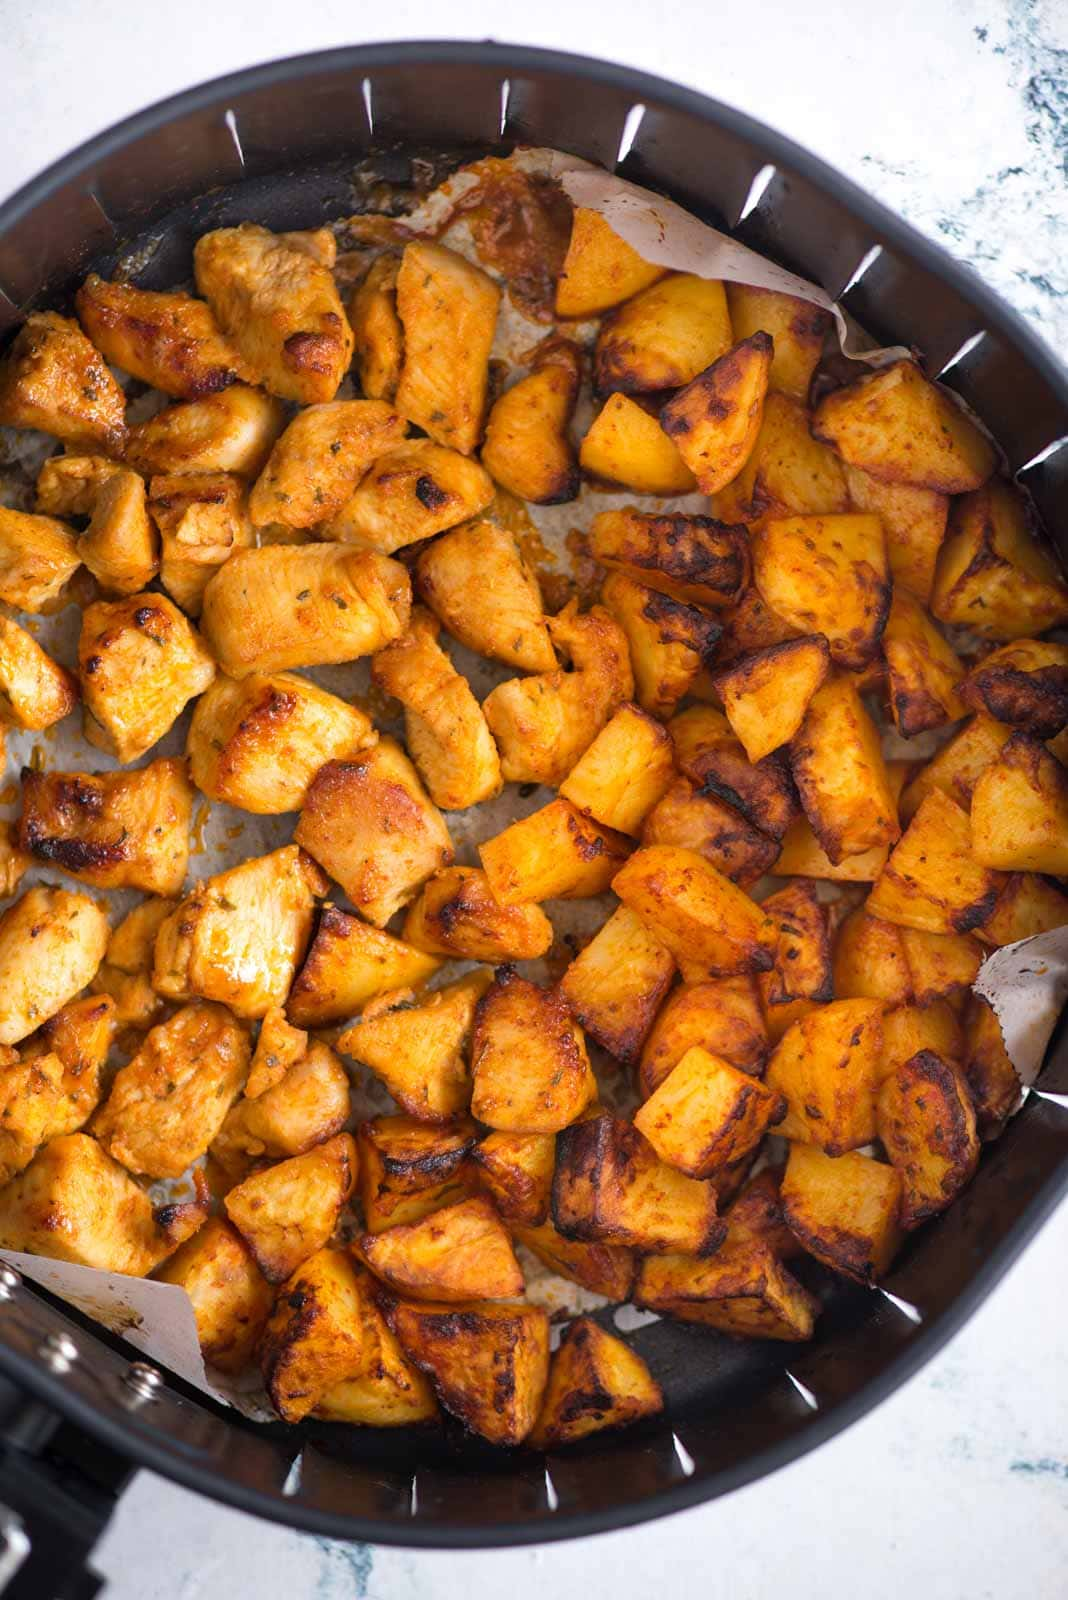 Airfryer Chicken and Potatoes - Boneless chicken breast, cubed potatoes are tossed in ranch dressing and air fried until roasted. This healthy dinner with very little oil is ready in just 30 minutes.